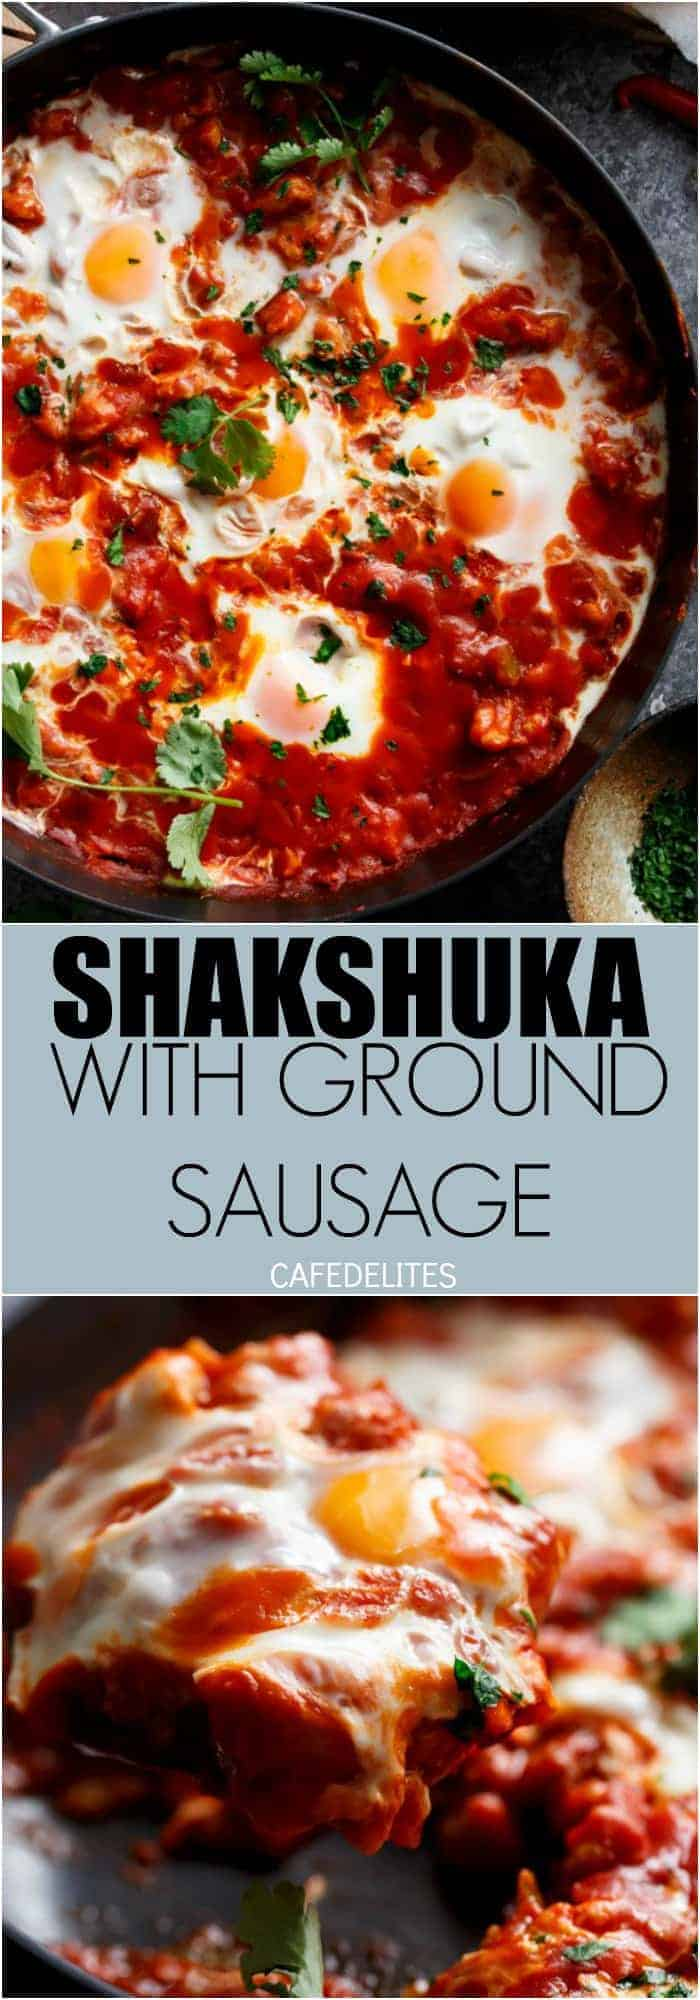 Eggs In Tomato Sauce (Shakshuka): thick, runny yolk meets rich tomato sauce. This is some good, fiery comfort food | http://cafedelites.com